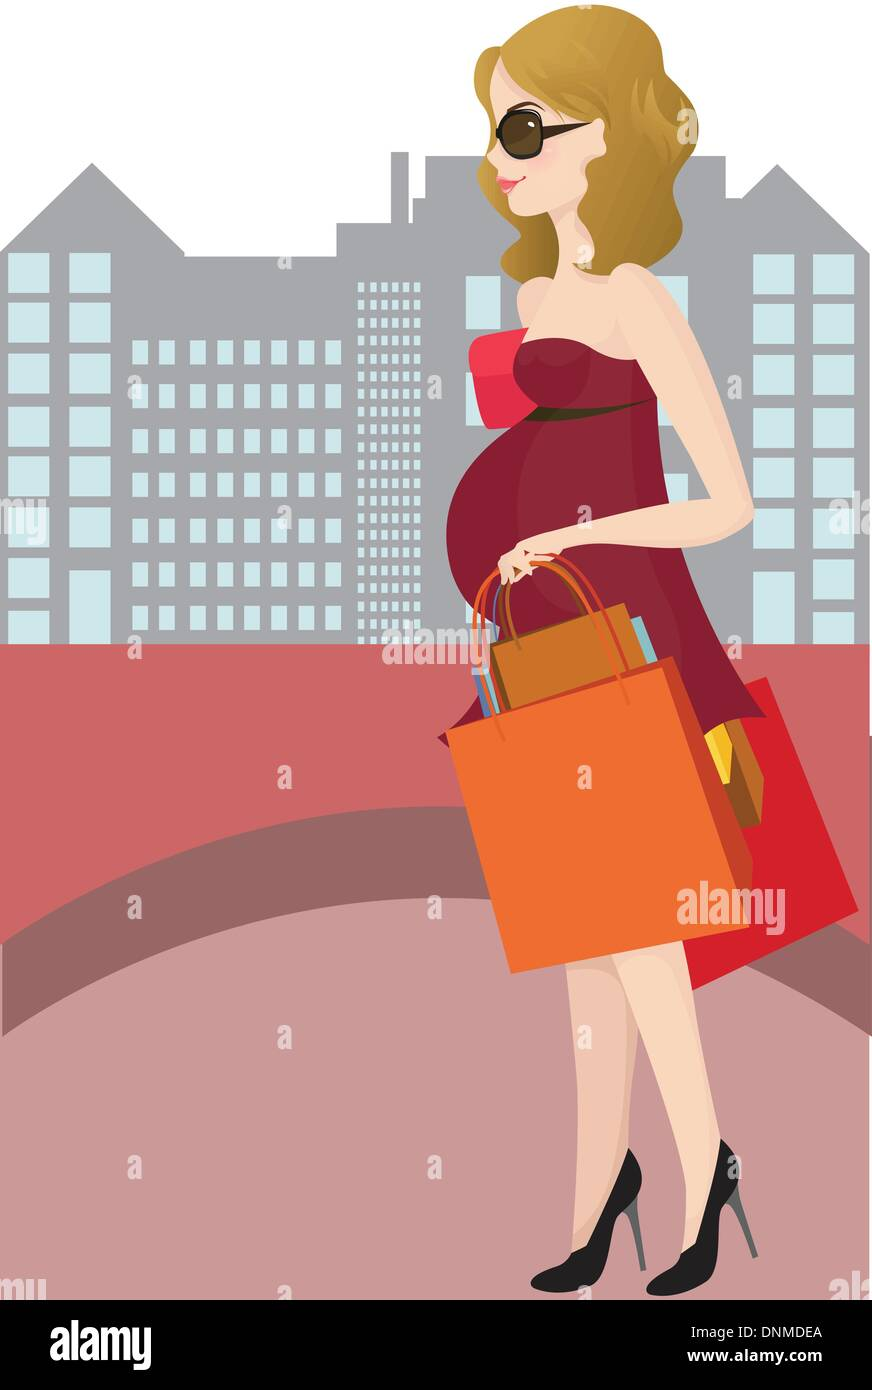 A vector illustration of a pregnant woman going shopping - Stock Image